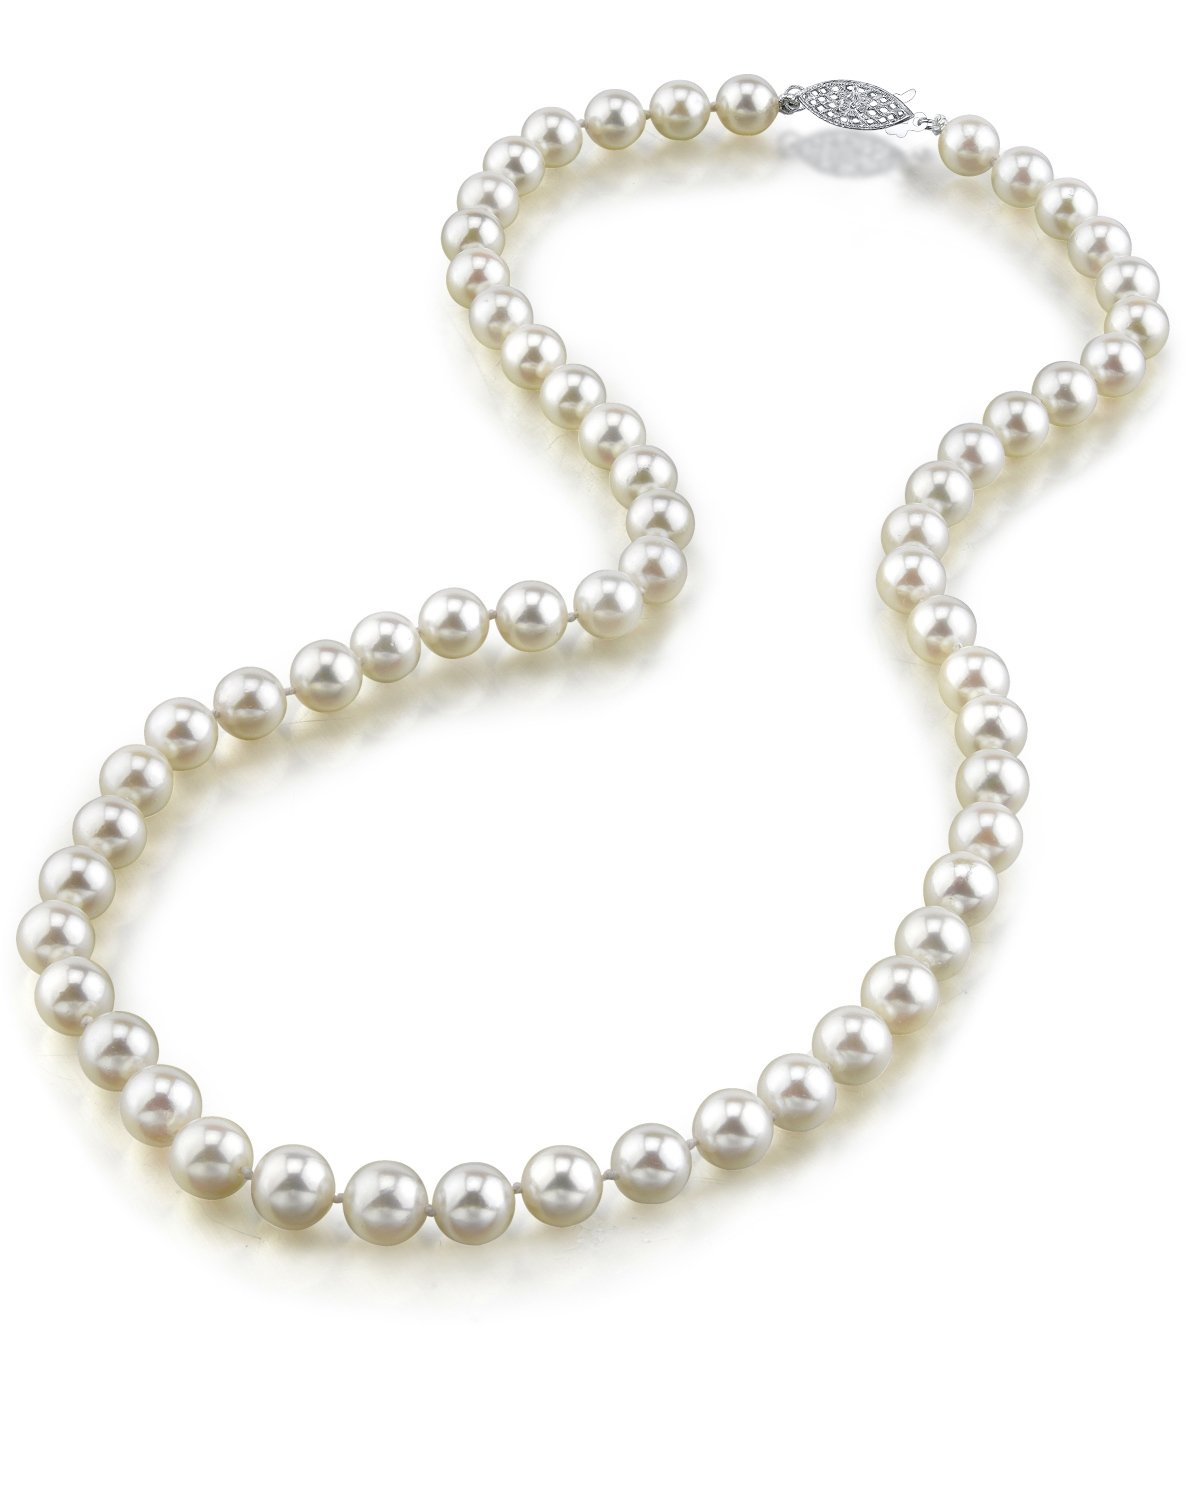 14K Gold 6.5-7.0mm Japanese Akoya Saltwater White Cultured Pearl Necklace - AA+ Quality, 17'' Princess Length